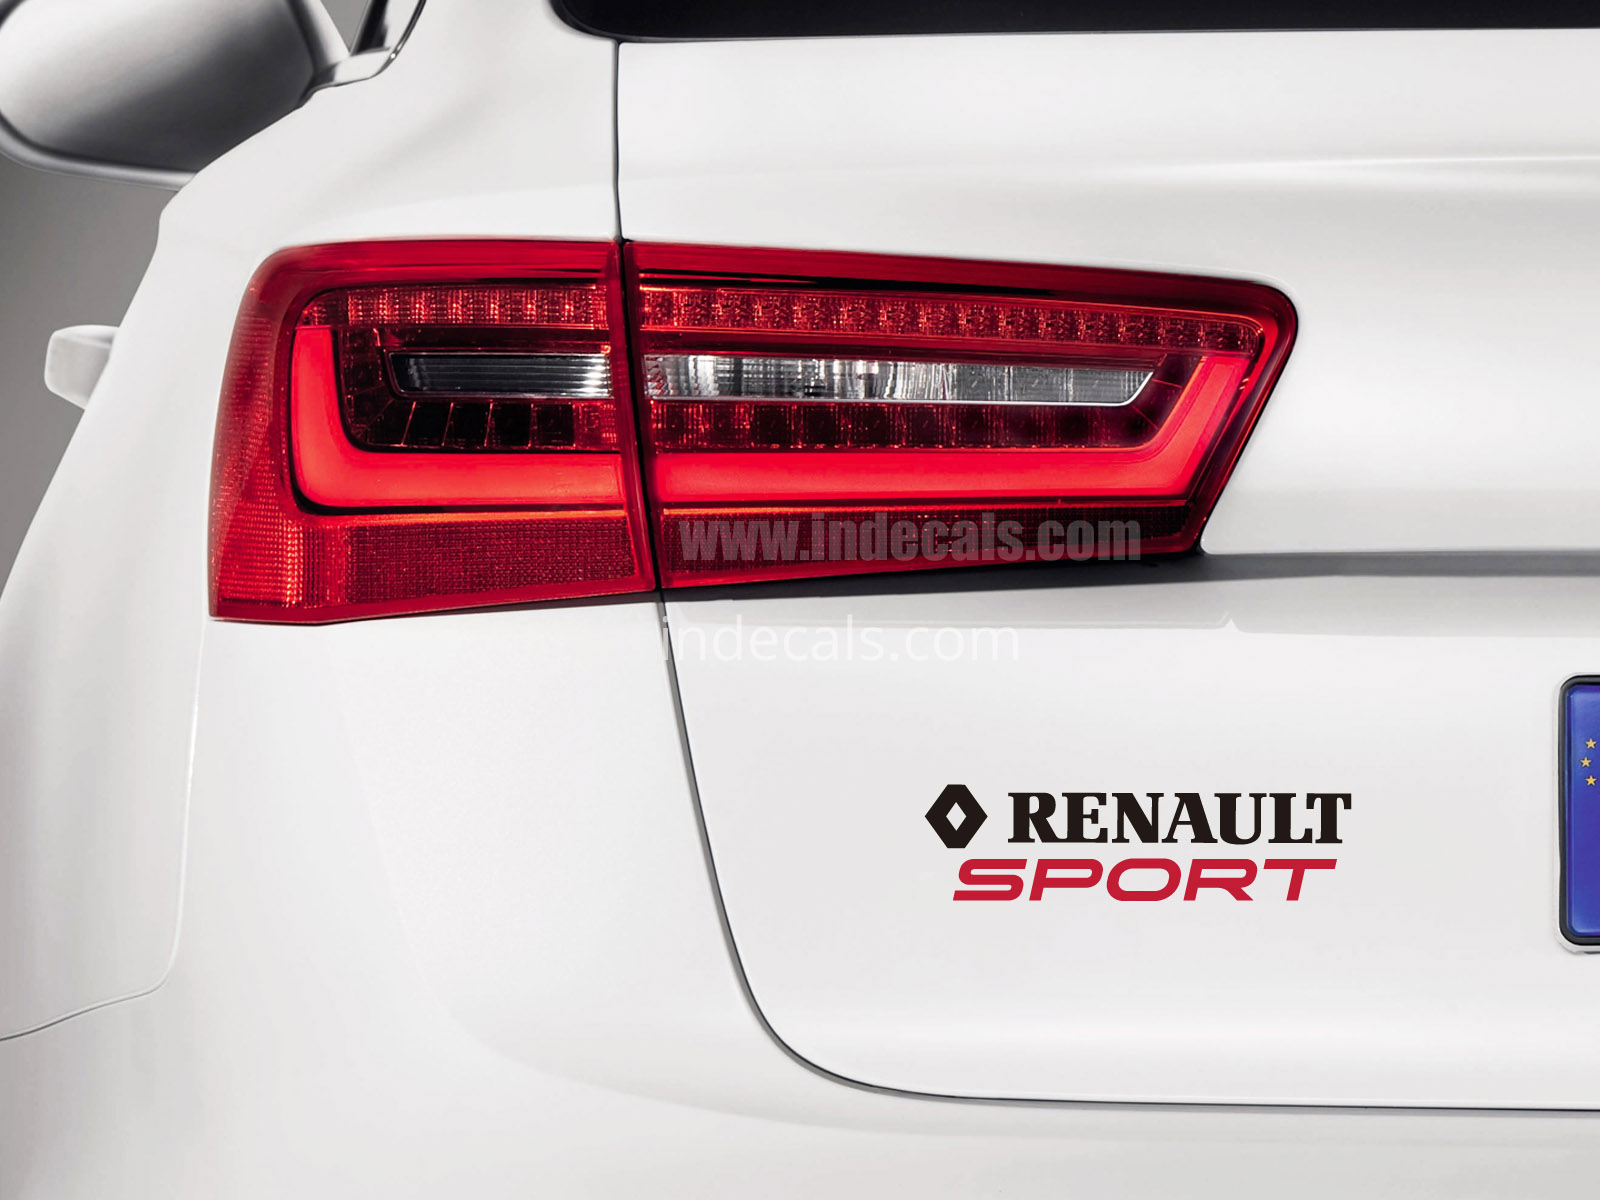 1 x Renault Sports Sticker for Trunk - Black & Red